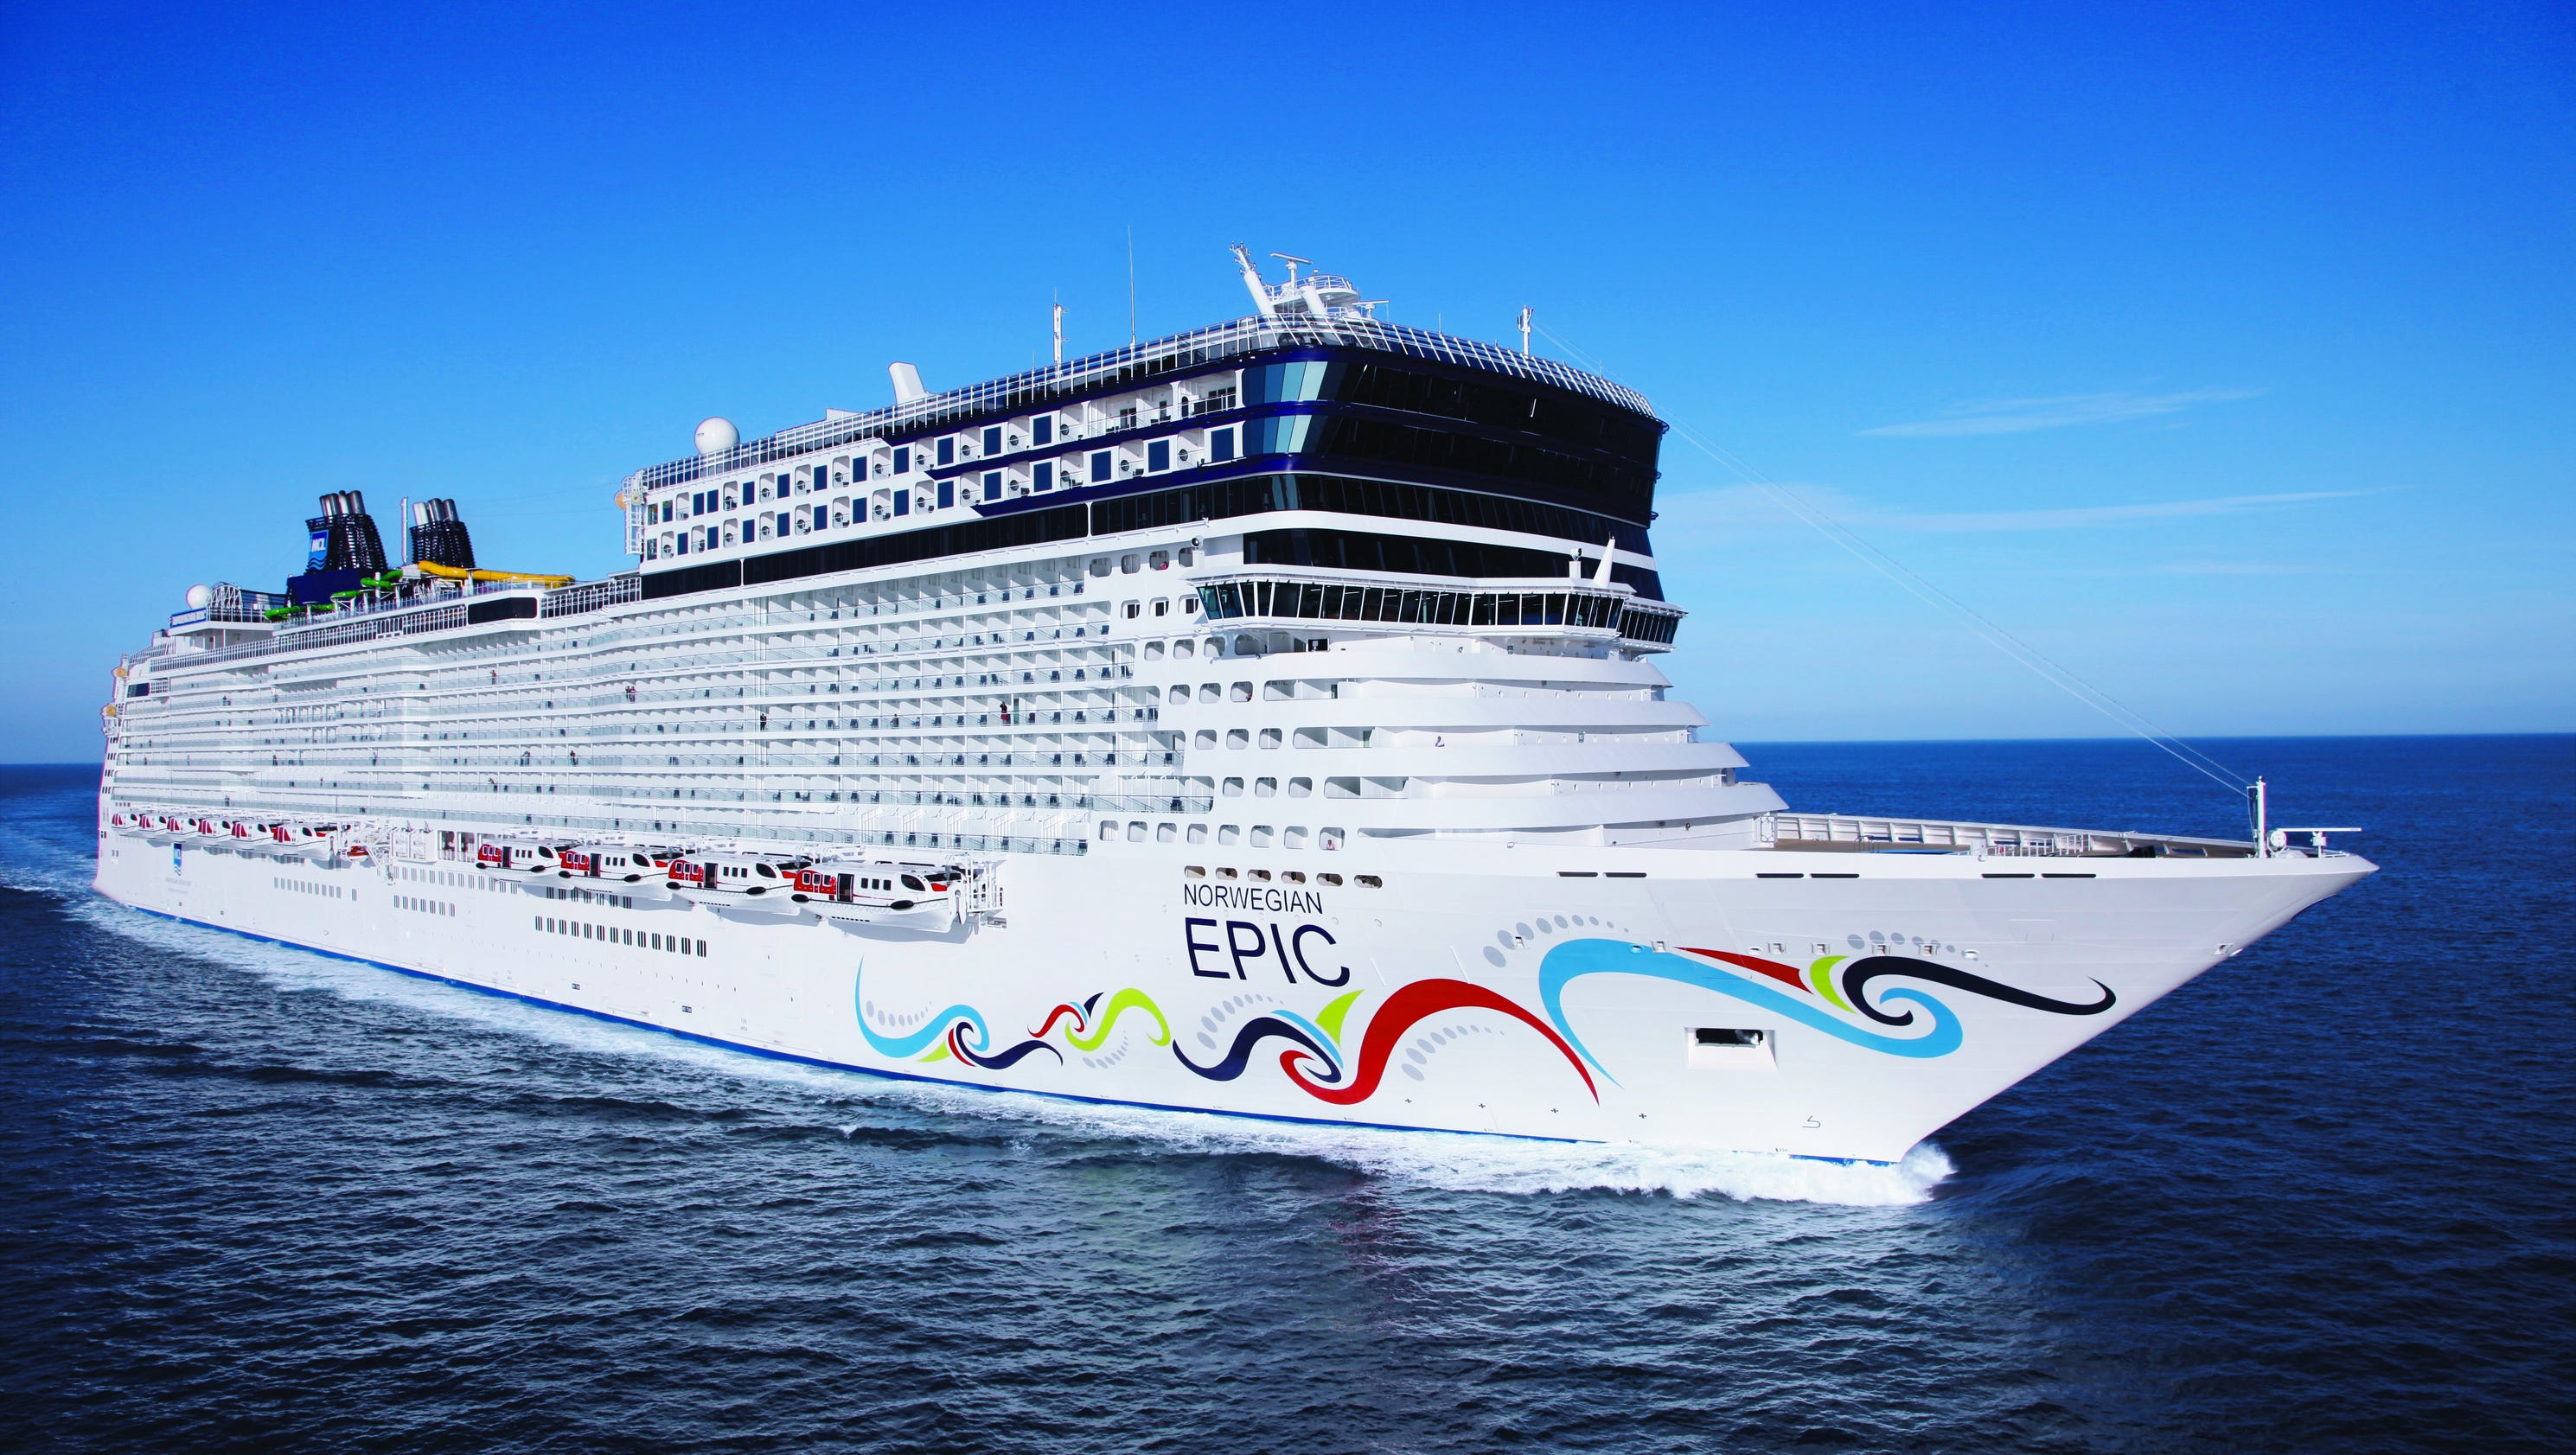 Norwegian Epic Cruise Ship To Become Largest Sailing From